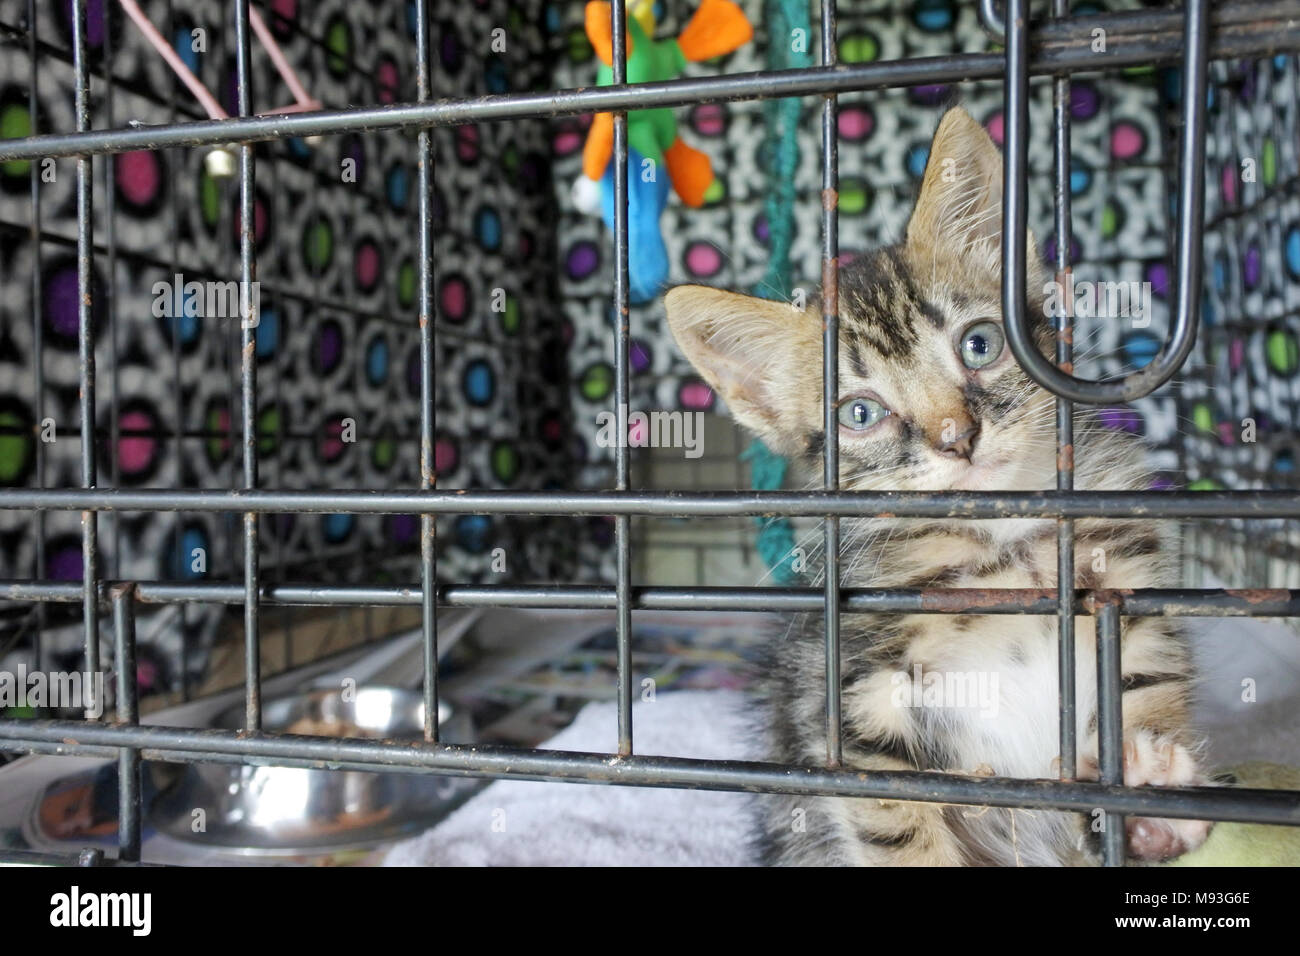 Sad kitten in a cage in animal shelter waiting for a new owner, looks at the camera. Real animals. Copy space - Stock Image